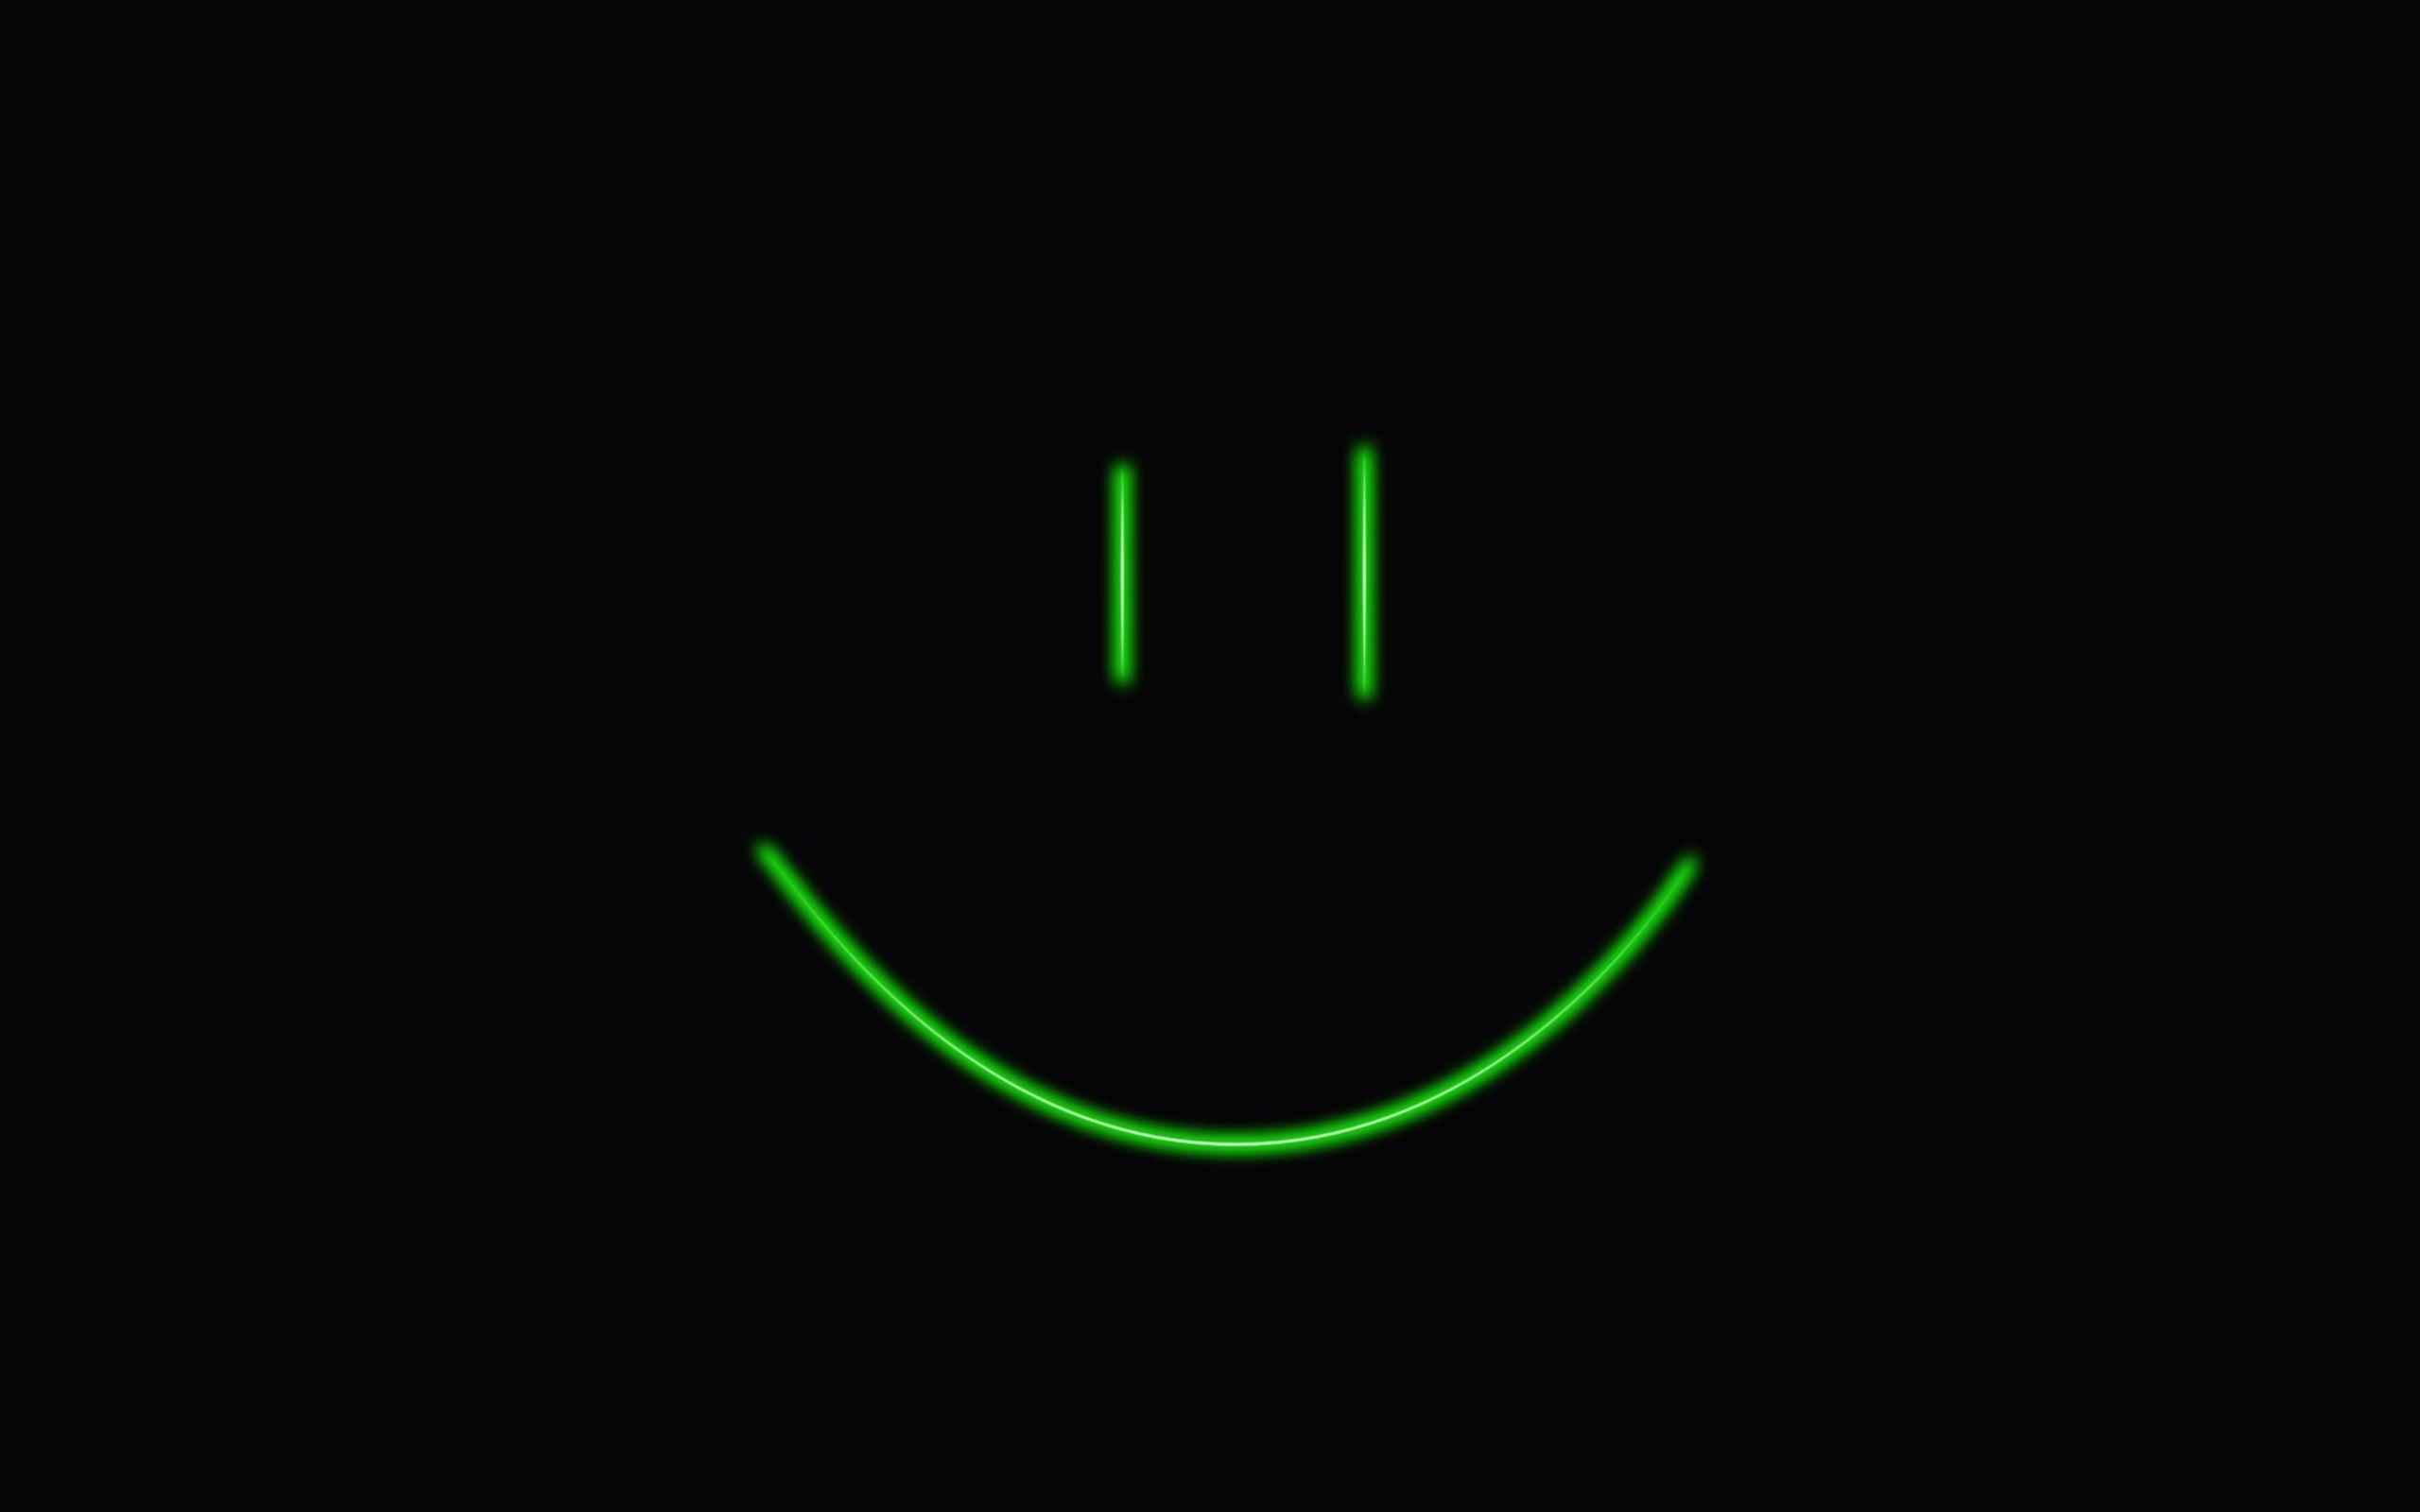 Smiley Faces Wallpapers - Wallpaper Cave